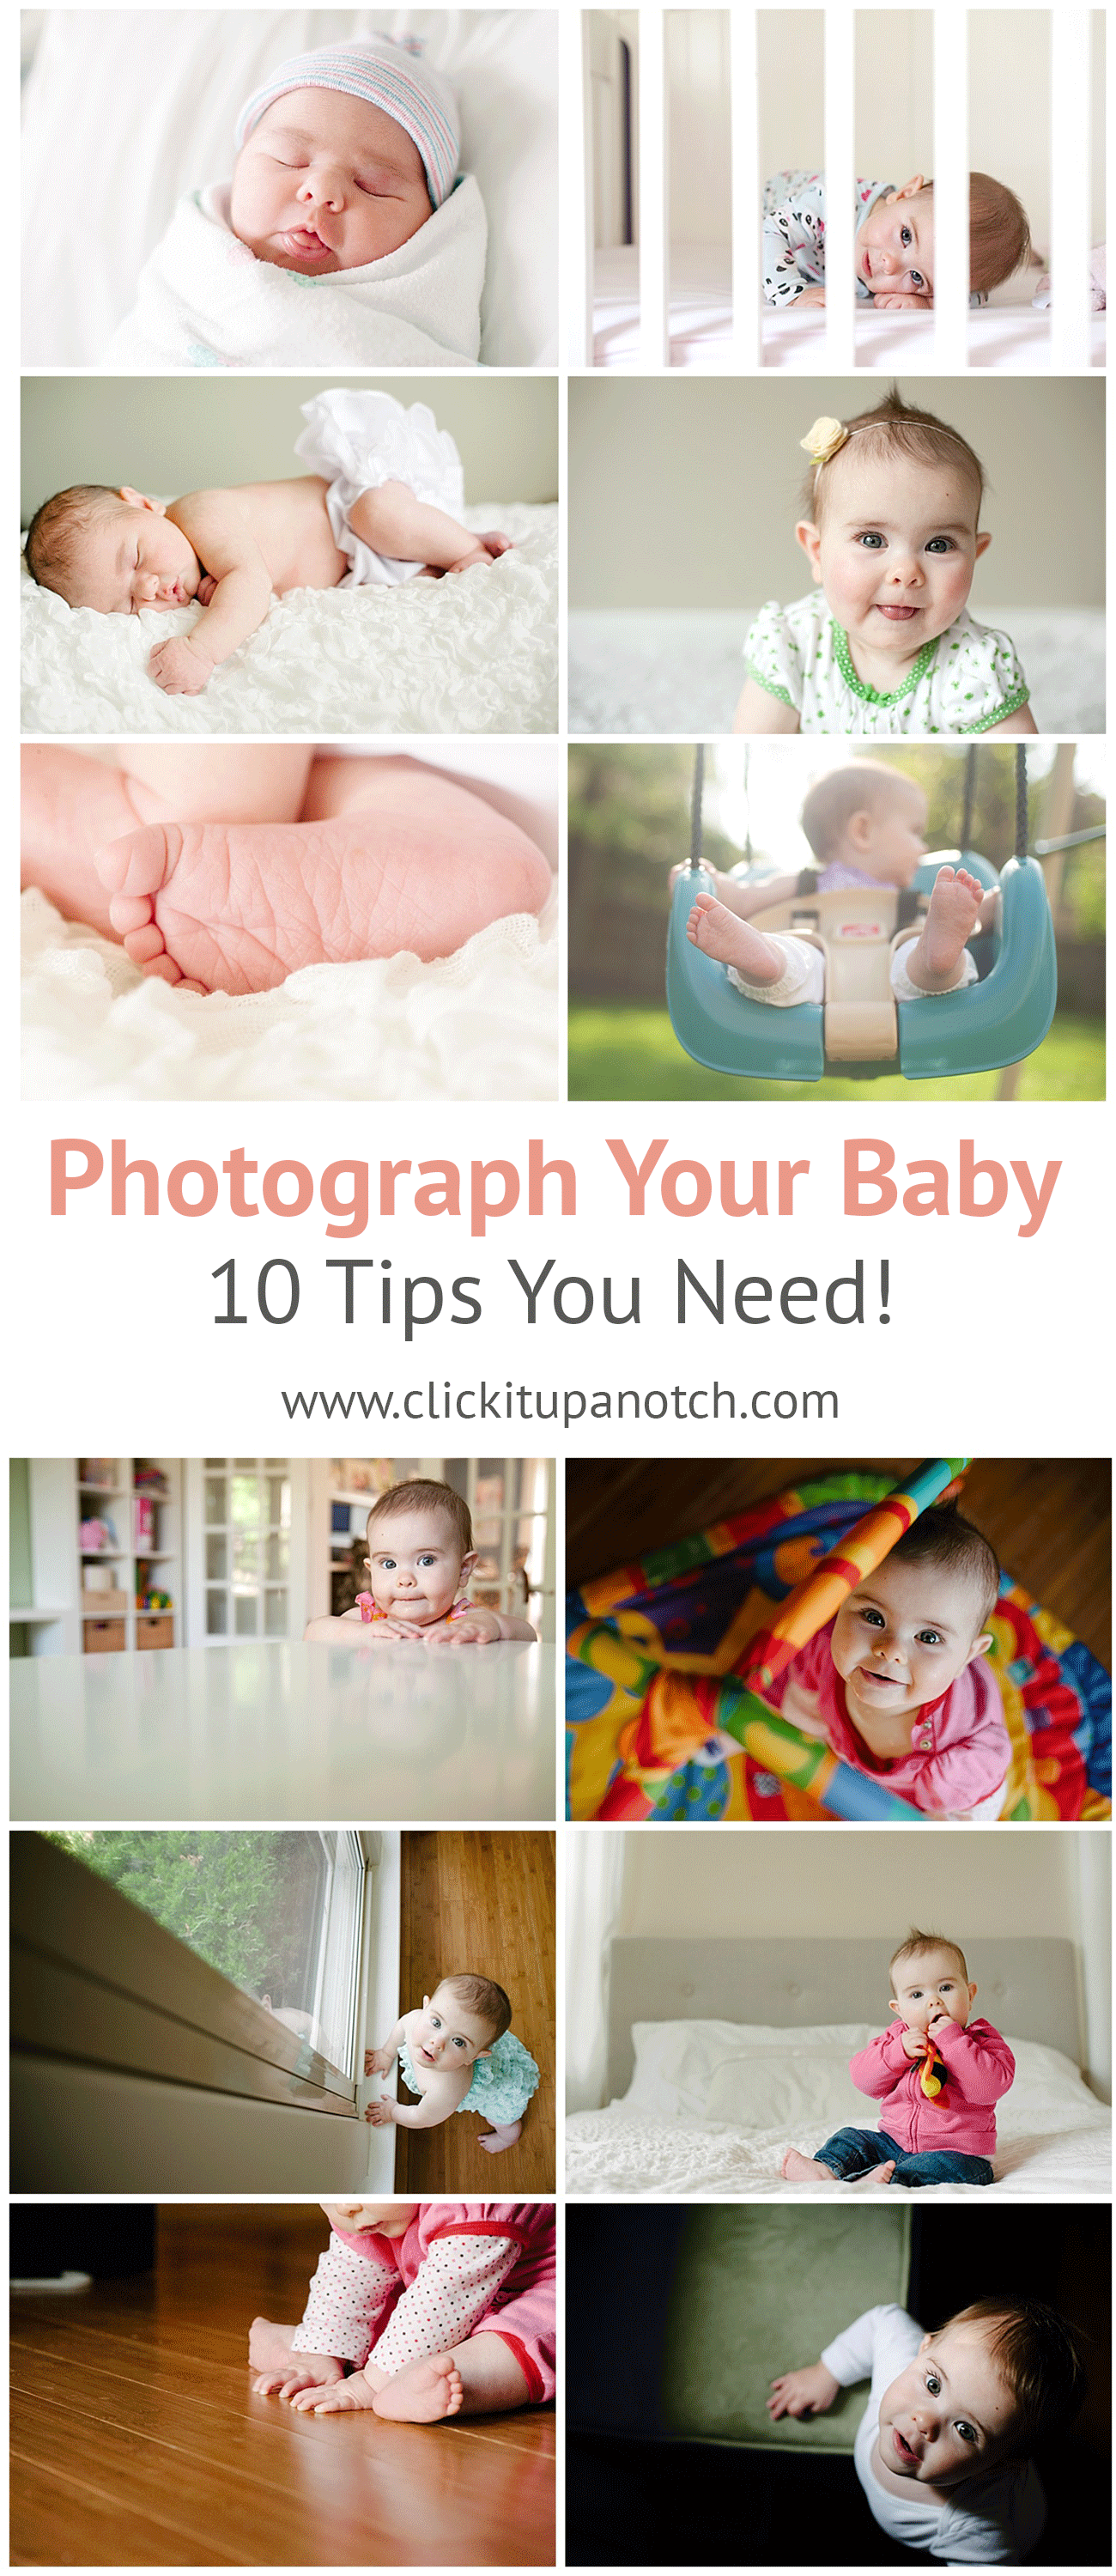 Amazing tips to help you photograph your baby! Such fun and creative ways to capture the early stages of having a baby. Everything you need to know about photographing your baby.